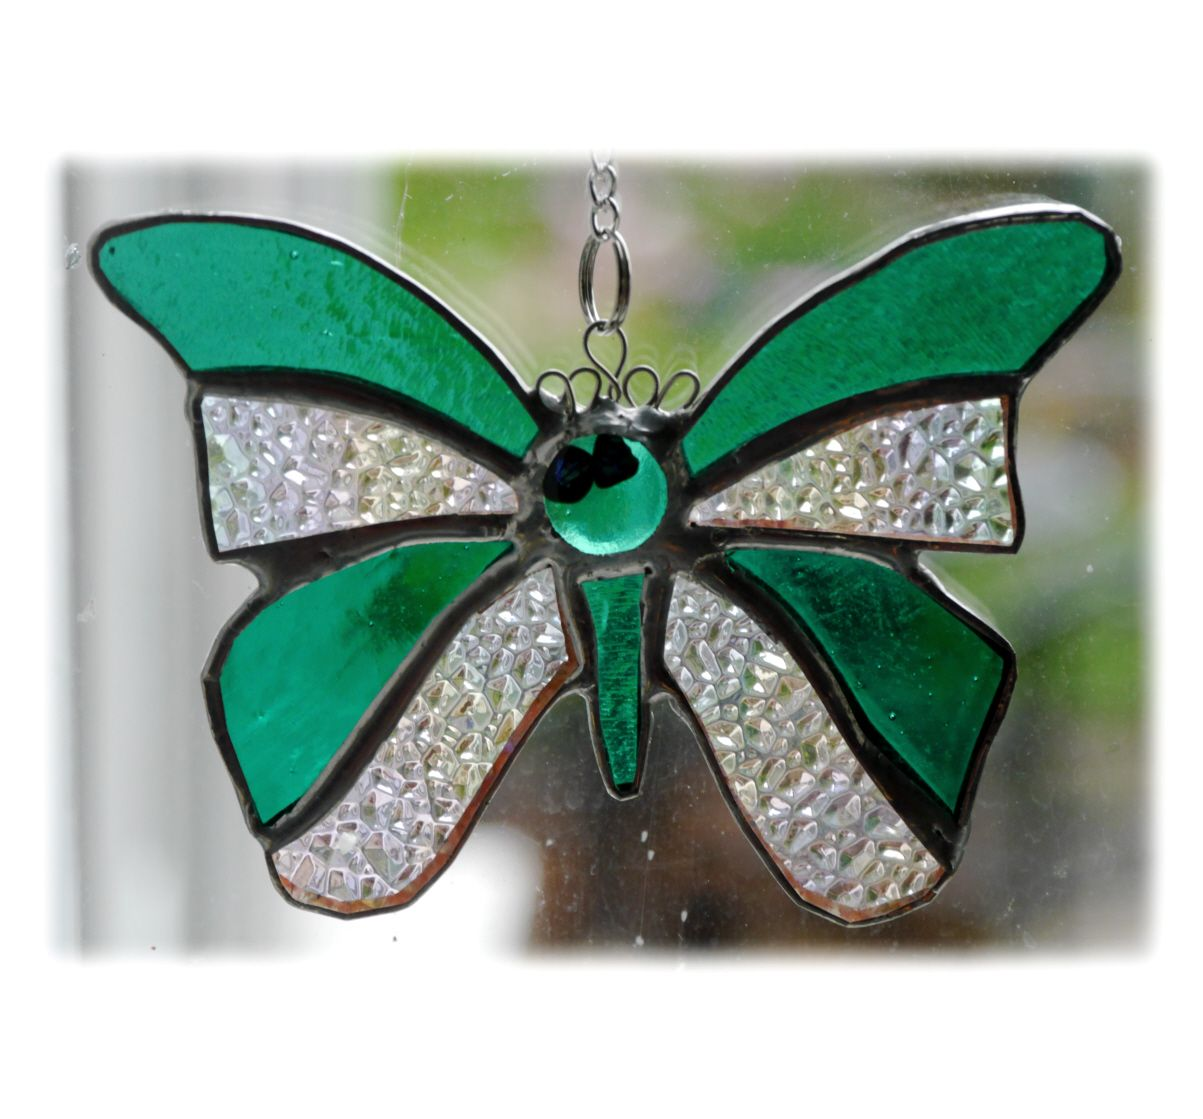 GREEN Birthstone Butterfly 055 Emerald May #1905 FREE 13.00